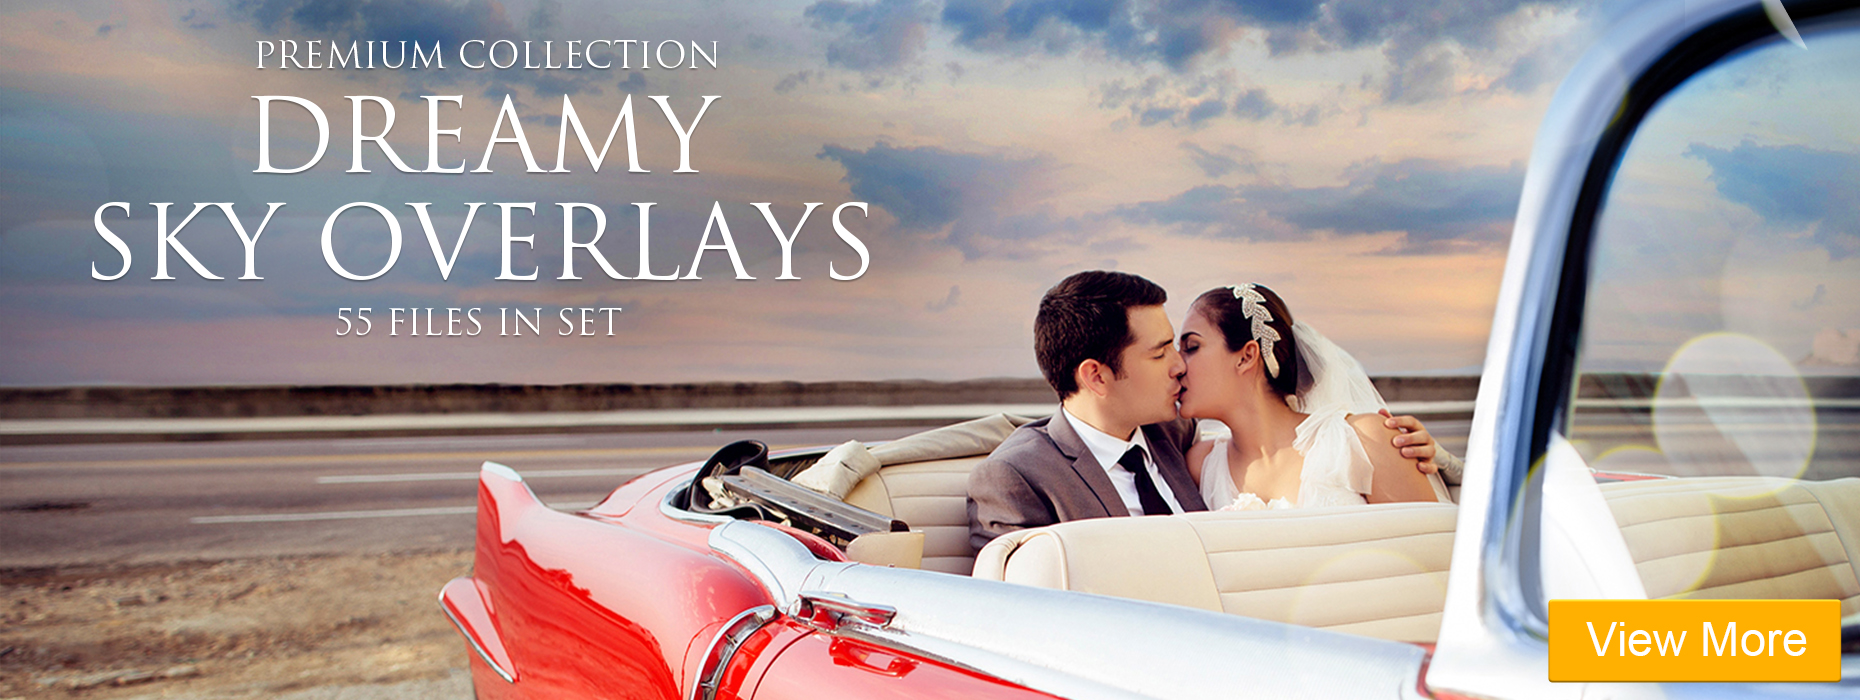 free snow overlay for photoshop dreamy sky photoshop overlays collection banner wedding